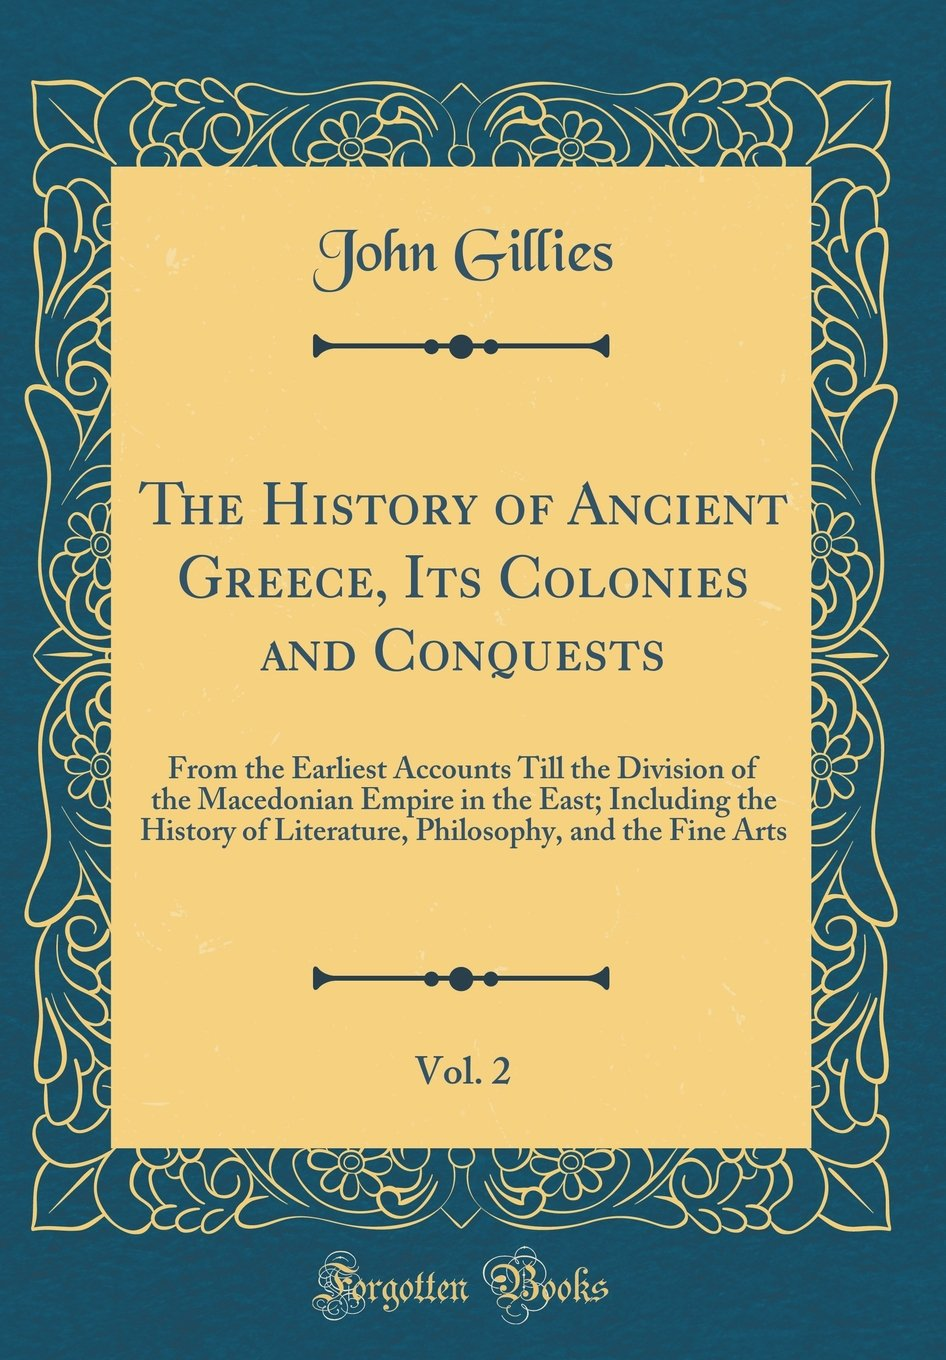 Download The History of Ancient Greece, Its Colonies and Conquests, Vol. 2: From the Earliest Accounts Till the Division of the Macedonian Empire in the East; ... and the Fine Arts (Classic Reprint) PDF